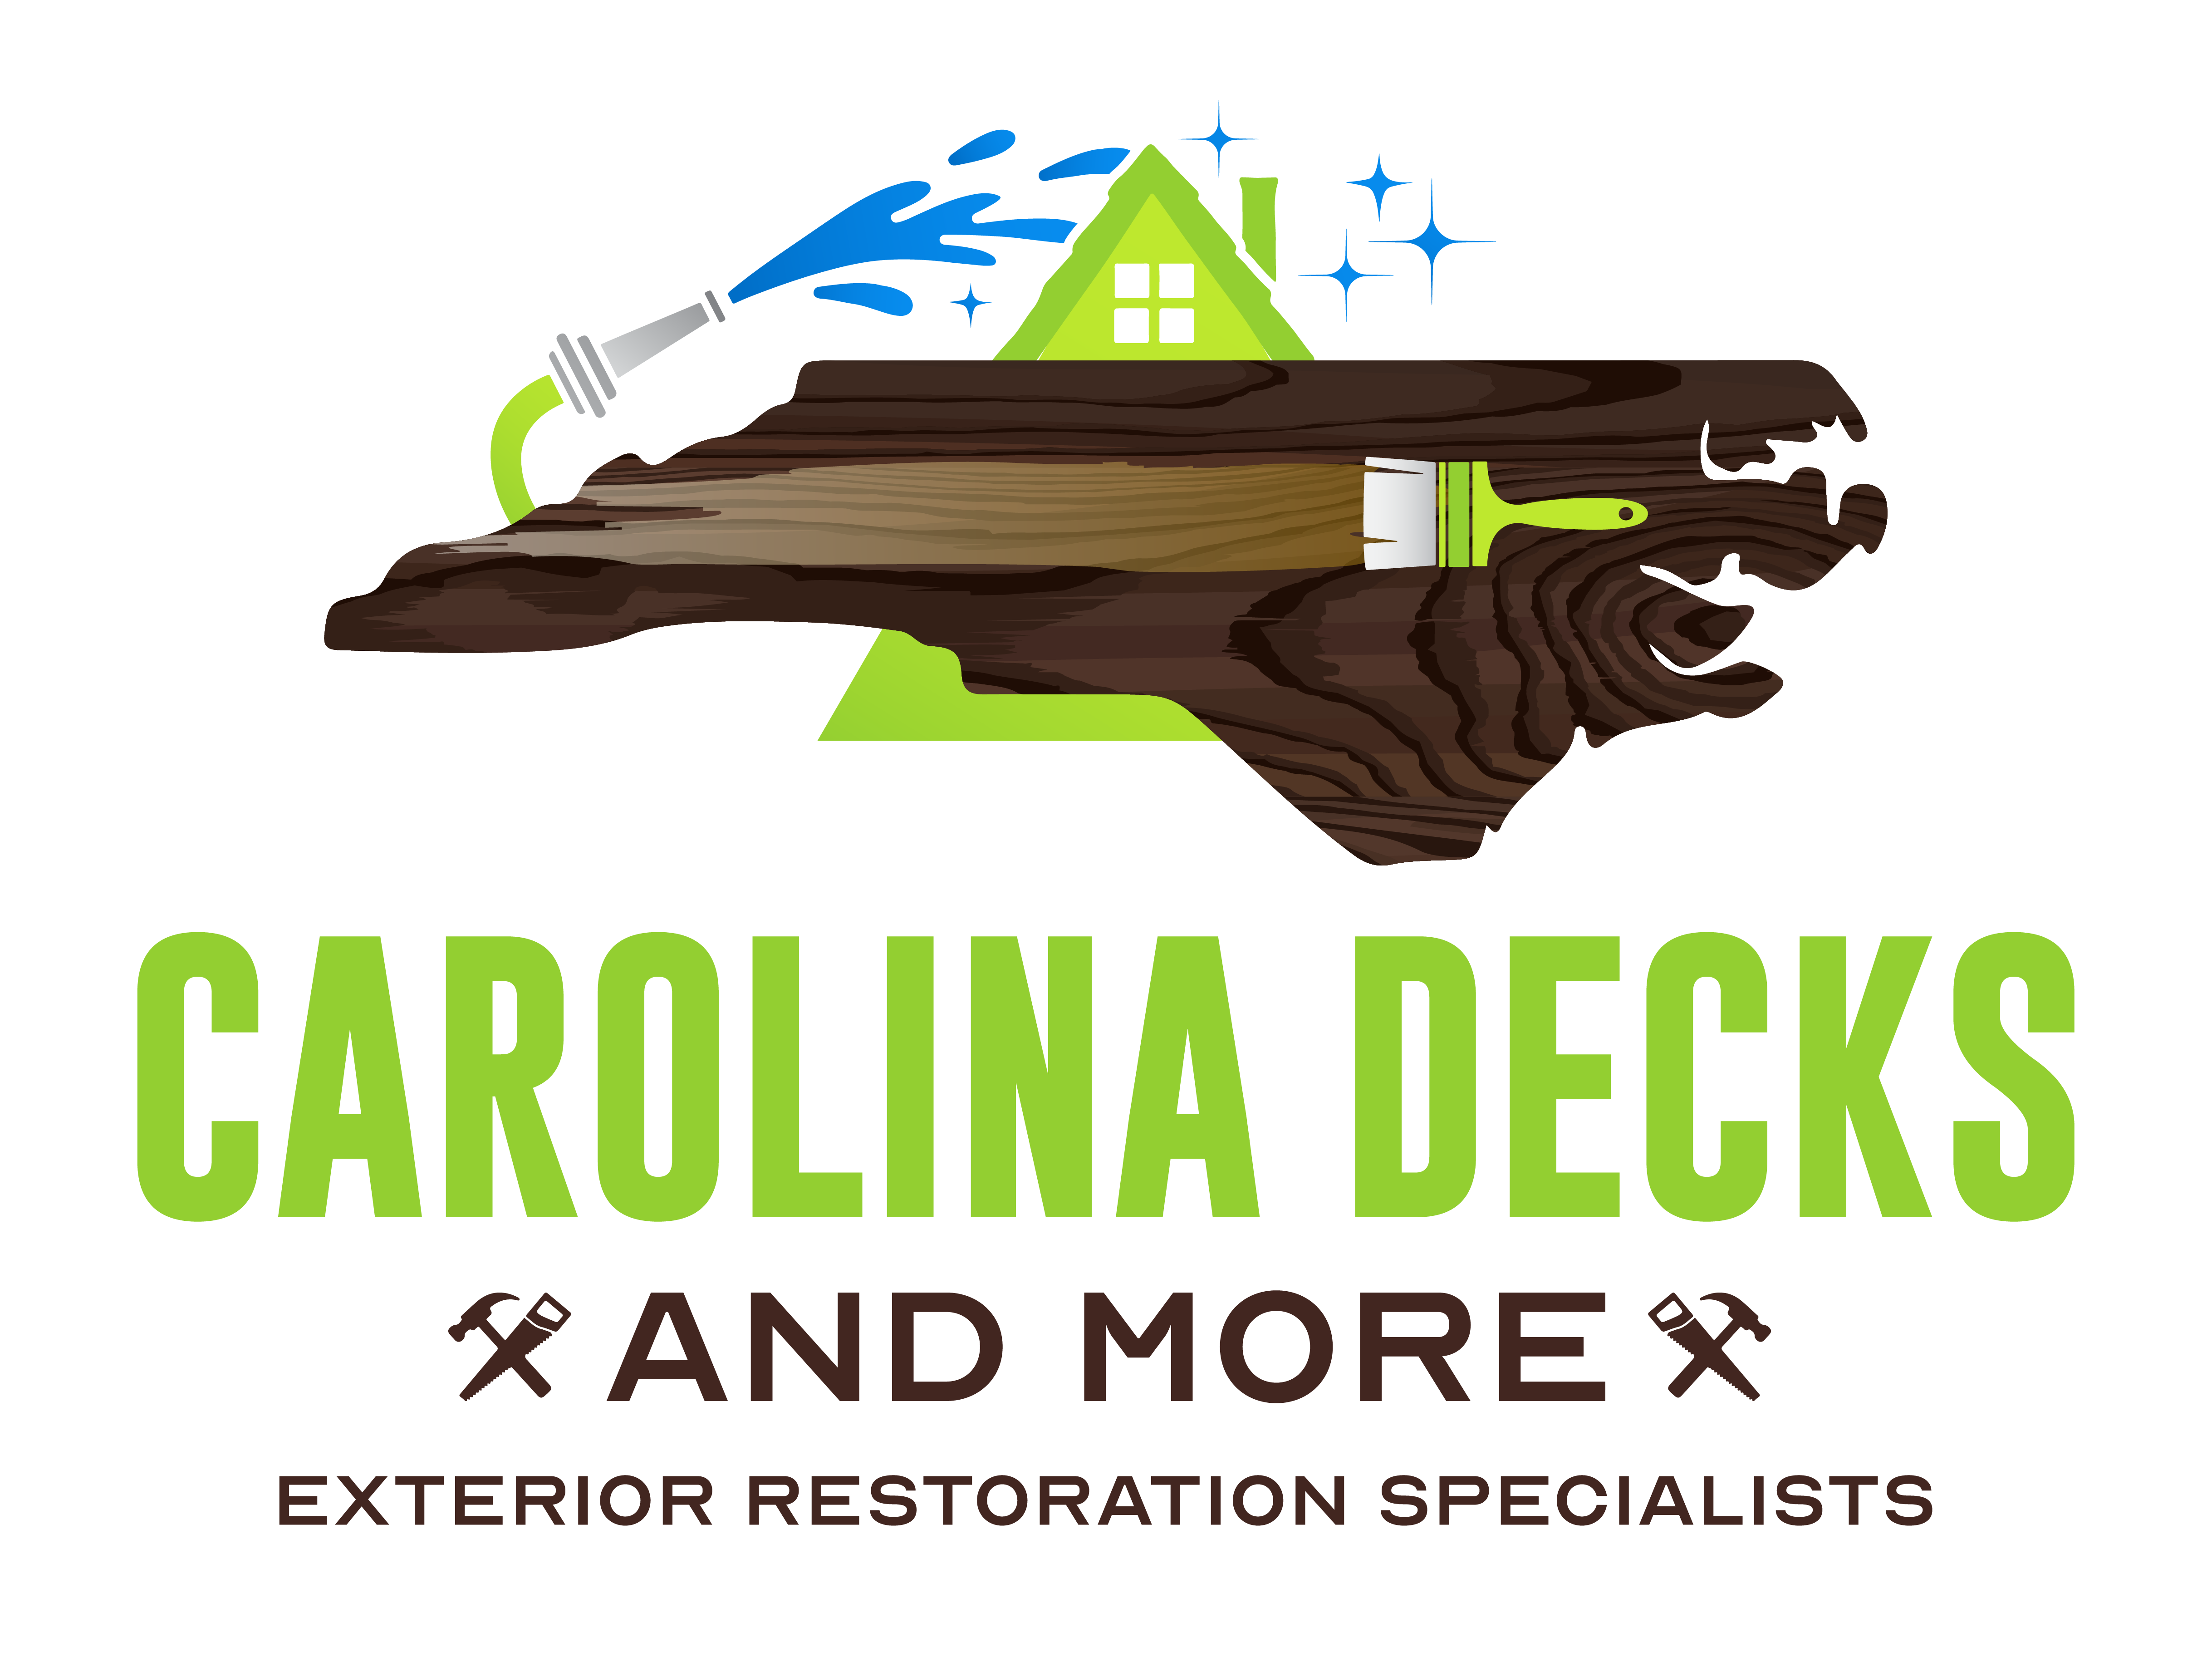 Carolina Decks and More (formerly Total Deck Care Of The Triangle) logo